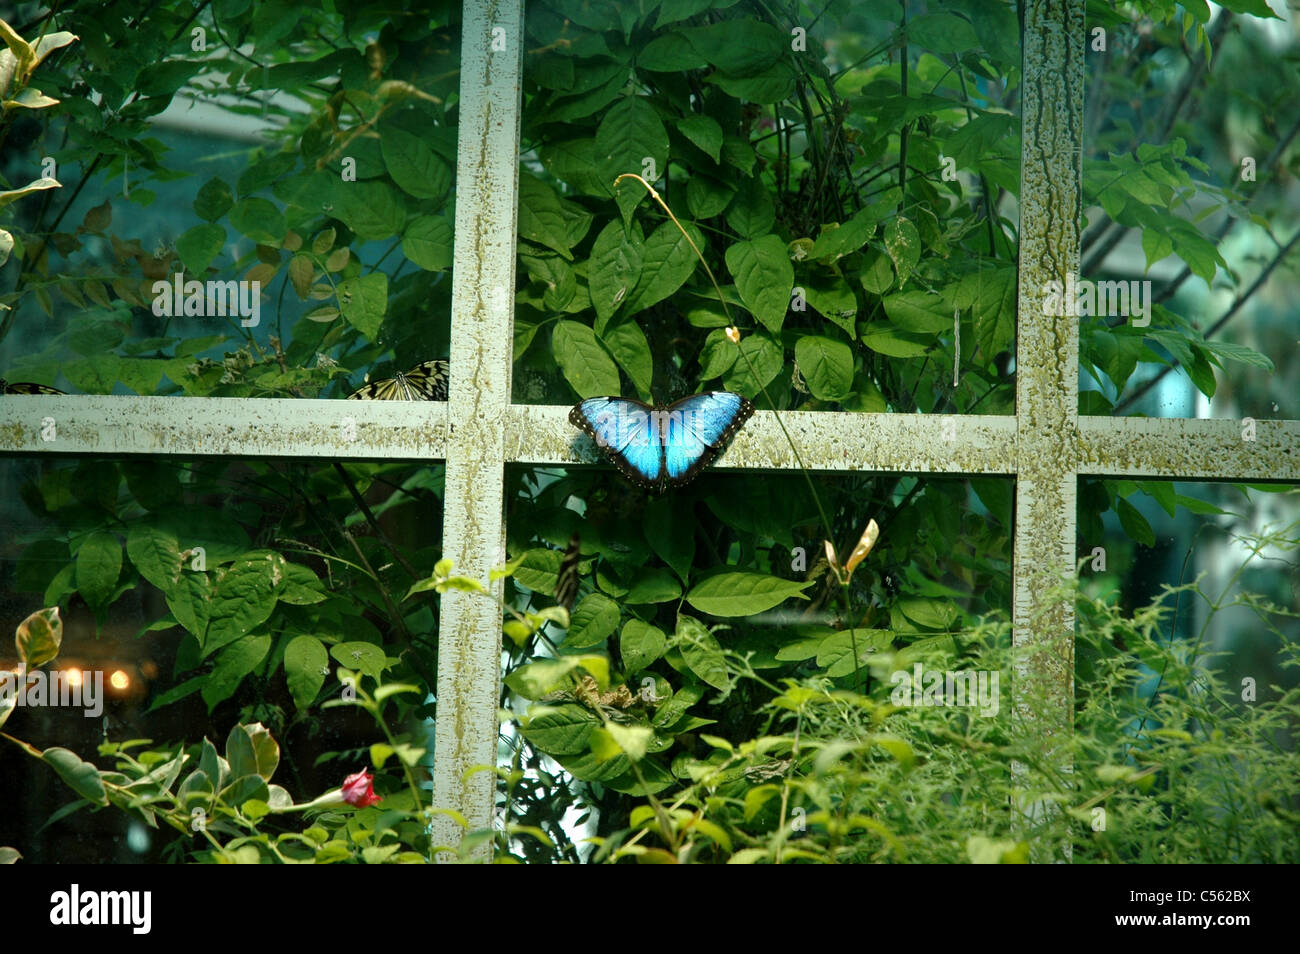 A butterfly lands on the window of a butterfly house in the Bellagio Conservatory and Botanical Gardens. Stock Photo